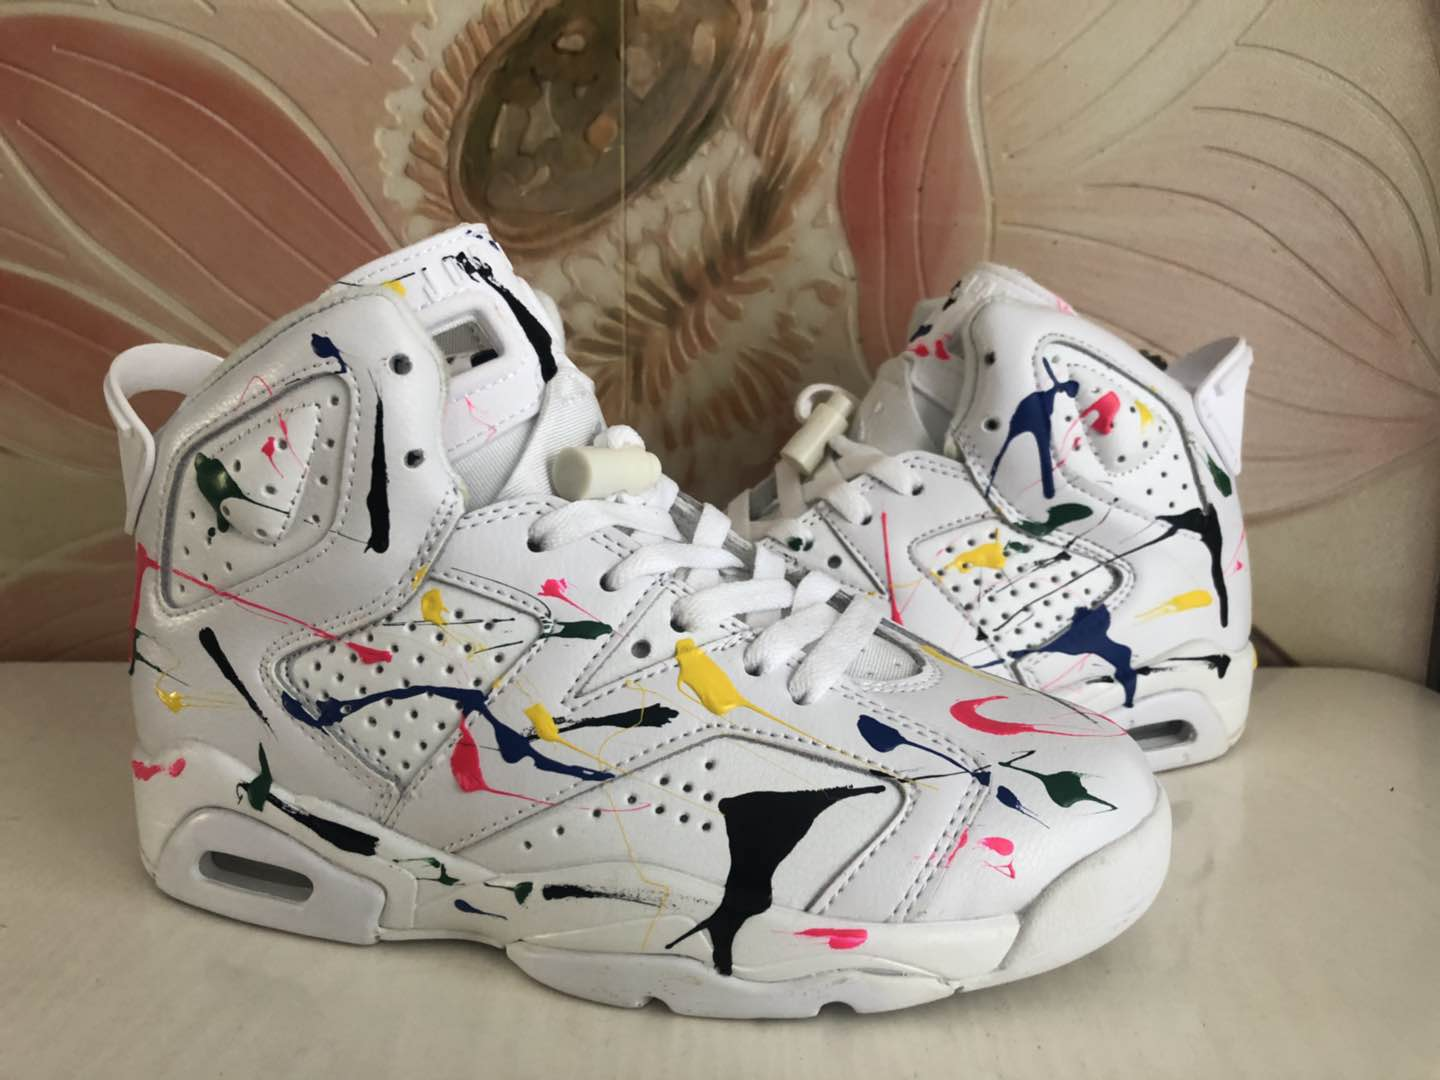 Air Jordan 6 Graffiti White Colorful Shoes For Women